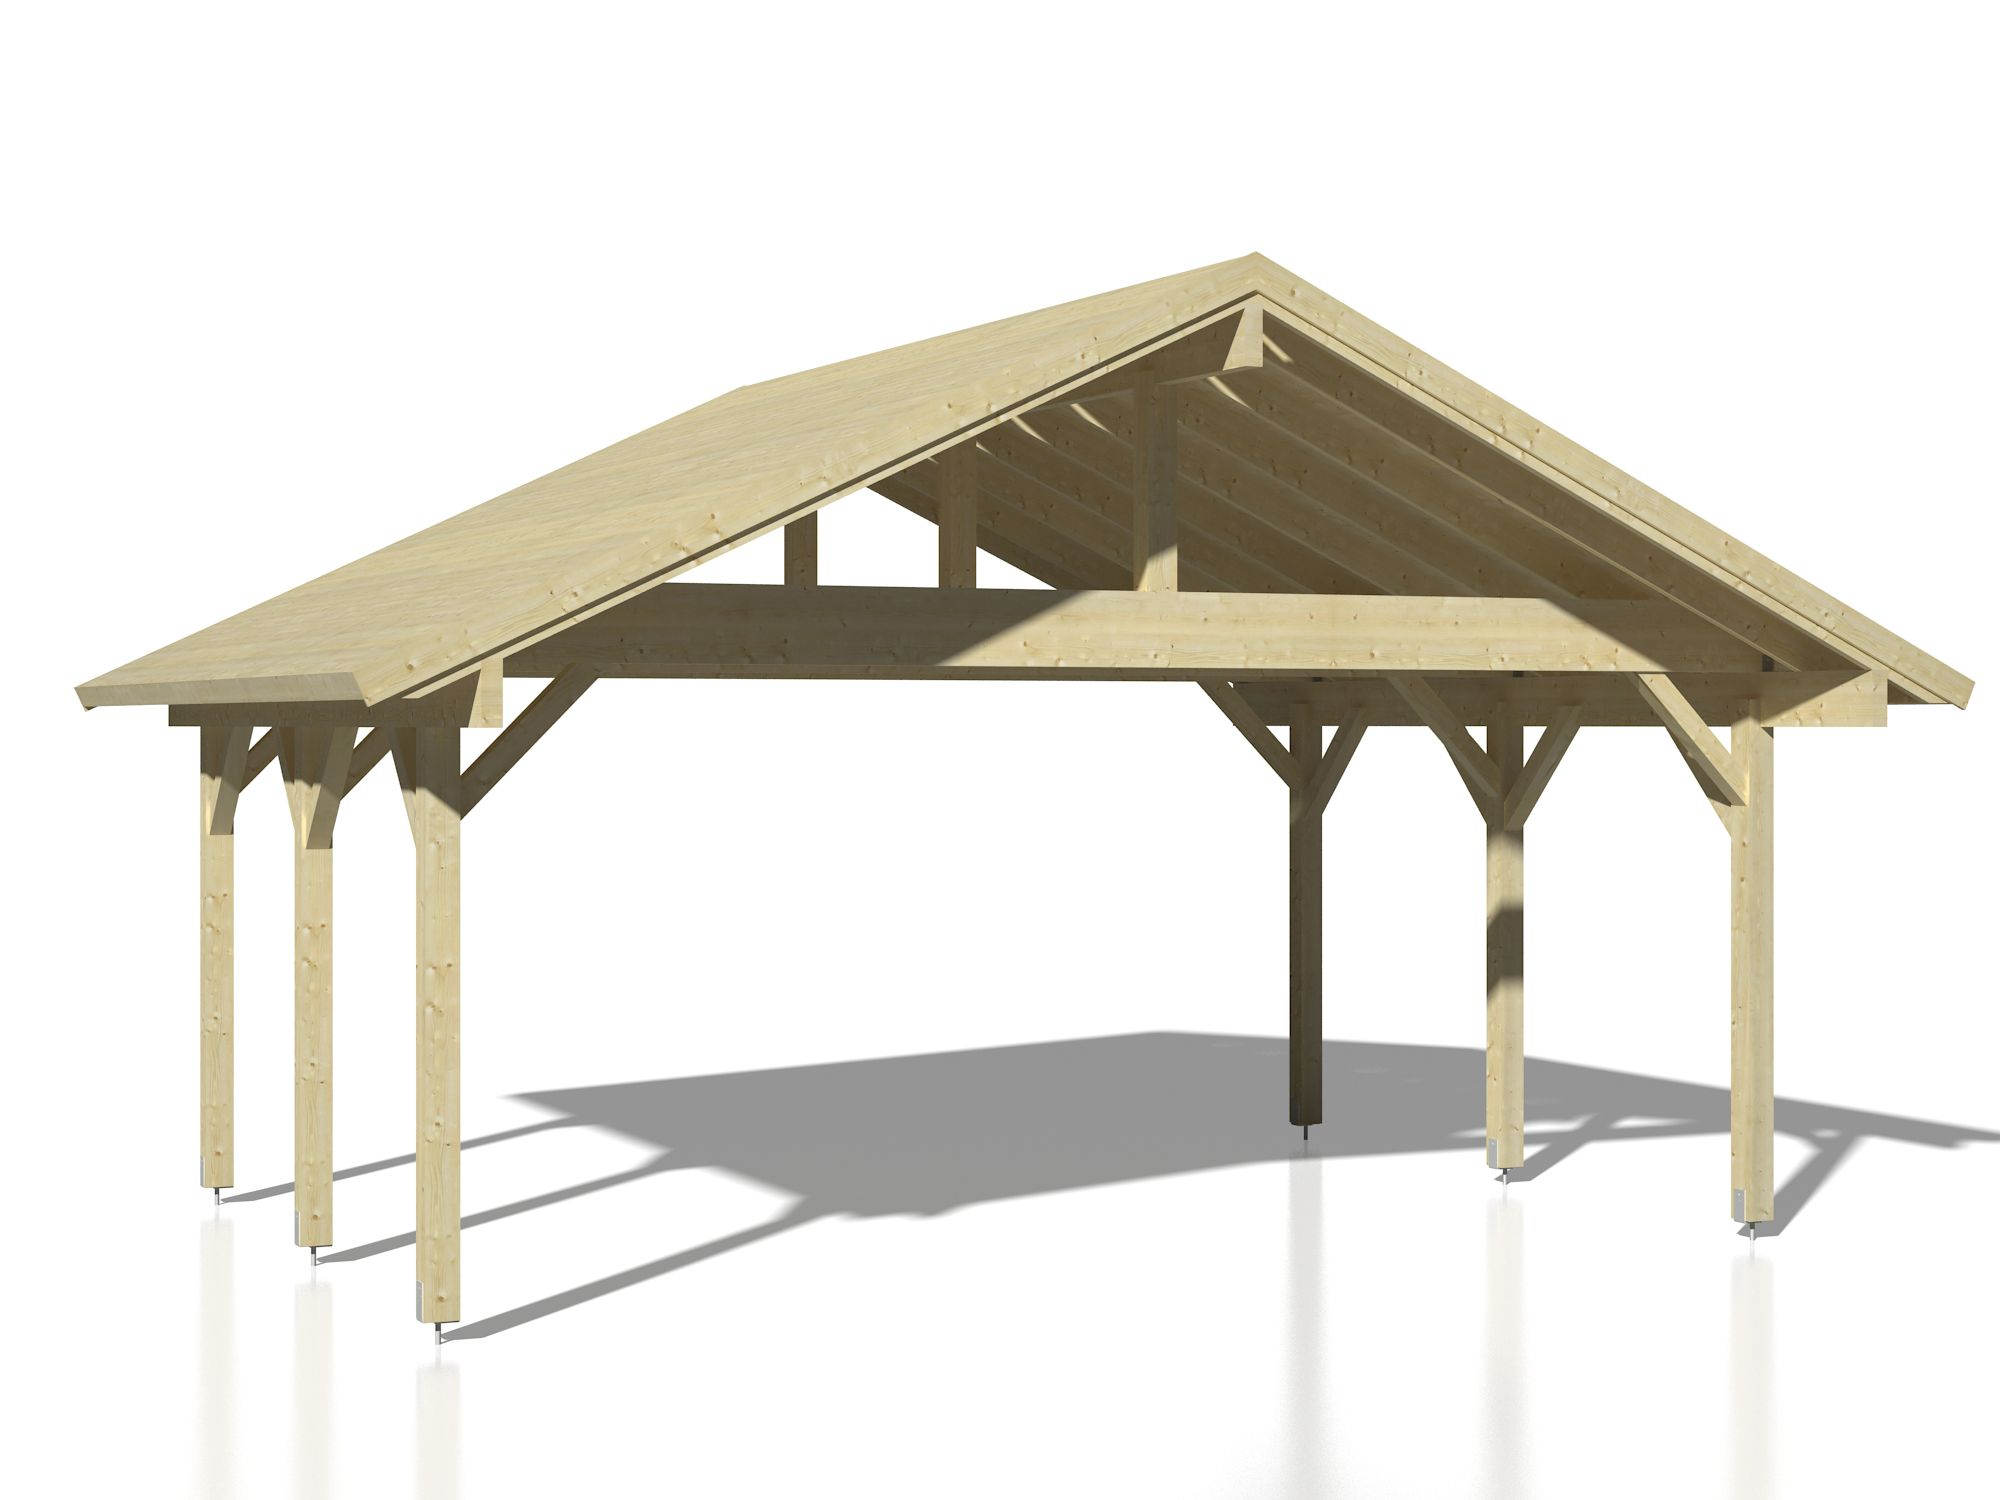 Pin by Petra Curiš on kupaonica in 2020 Wooden carports